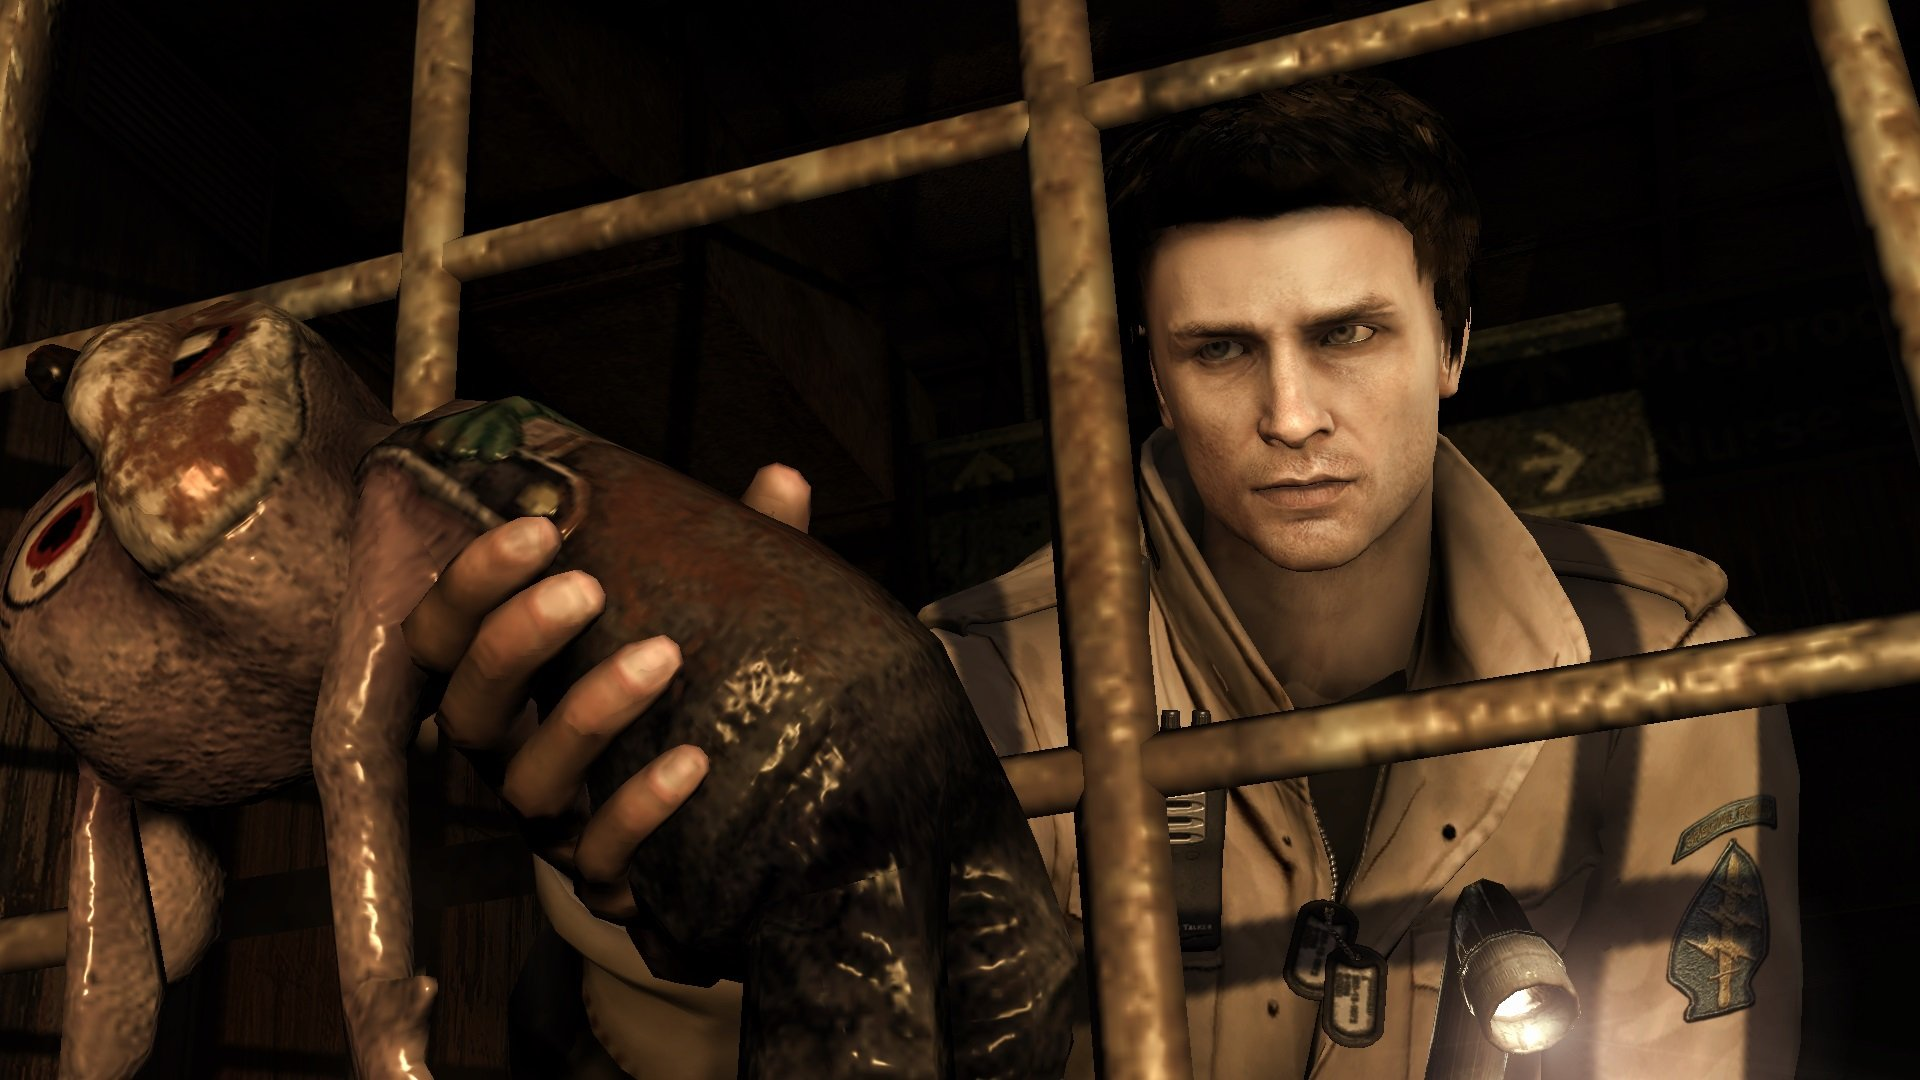 Here are the worst excuses for fathers in video games